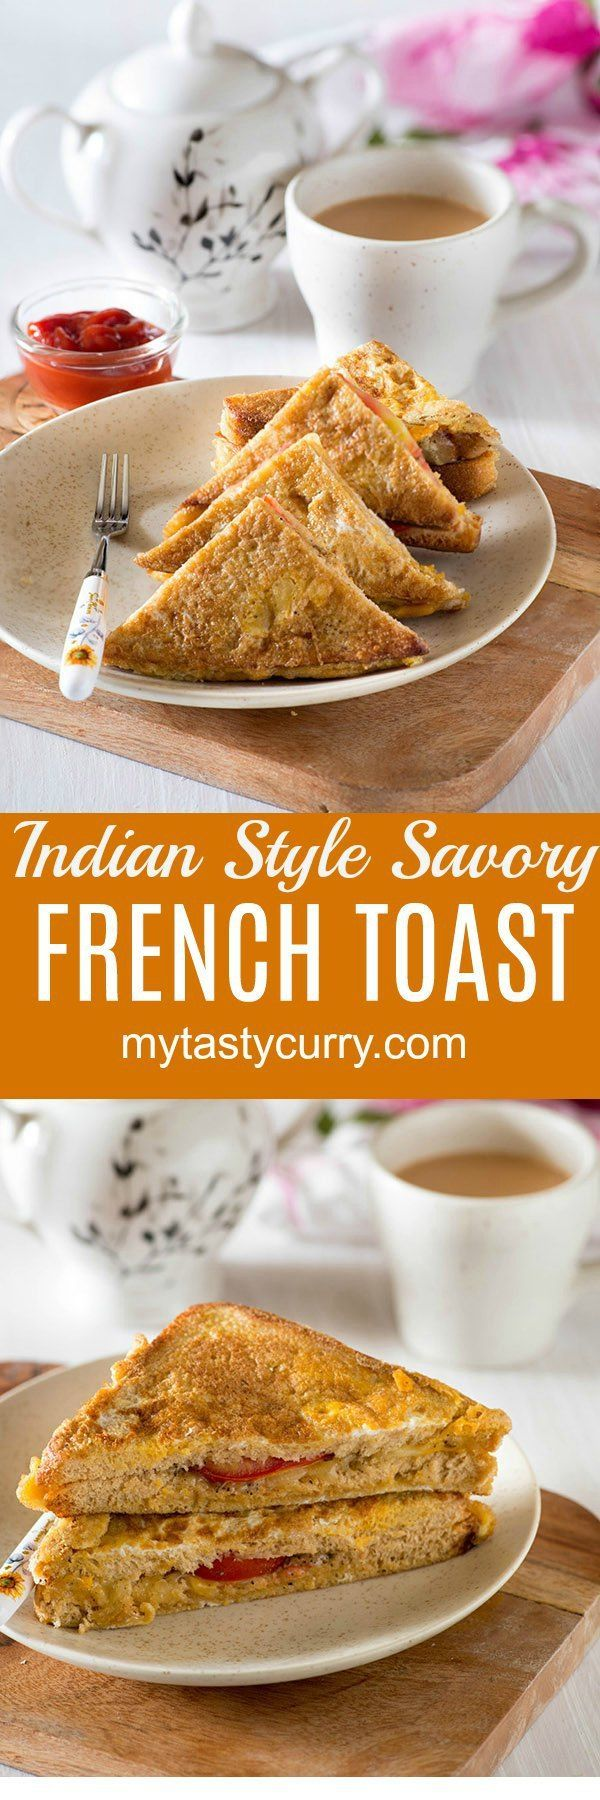 Indian French Toast is an Indianversion of the popularFrench toast. Quick and Easy Indian breakfast made with old bread and eggs is a delight to eat and especially so if you love eggs and bread for the breakfast